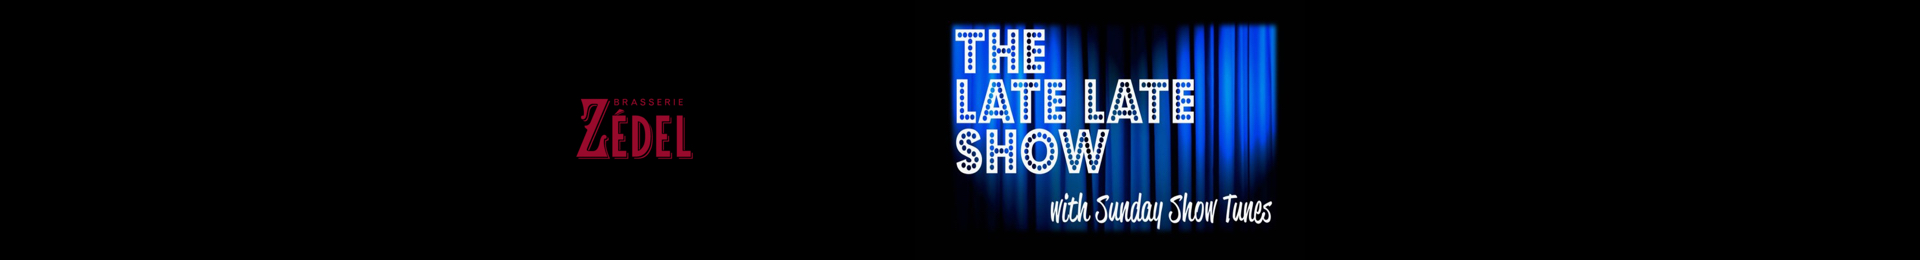 The Late Late Show With Sunday Show Tunes banner image